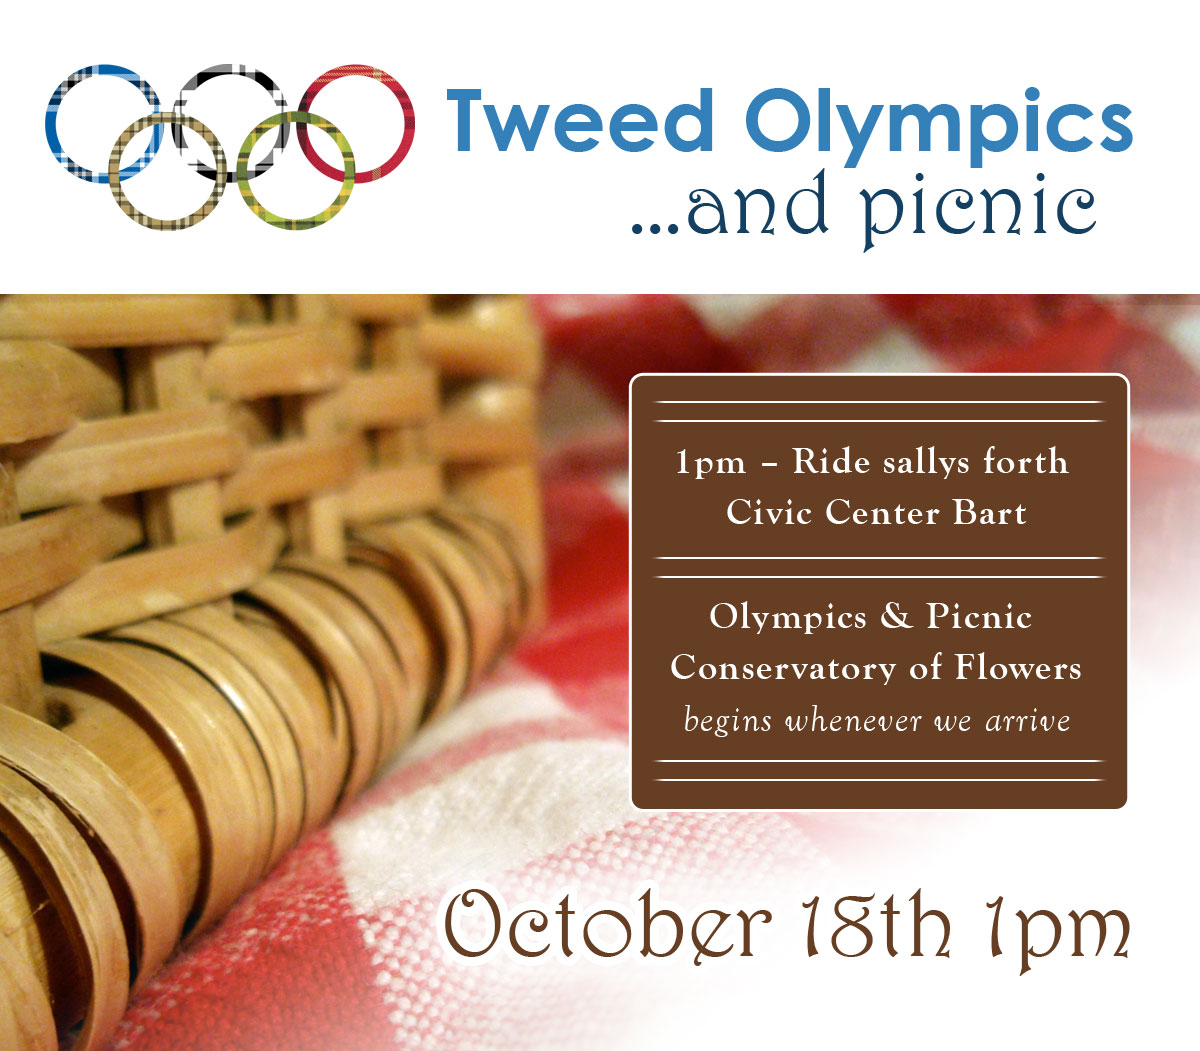 SF Tweed Olympics Picnic ~ Oct 18th, 1pm